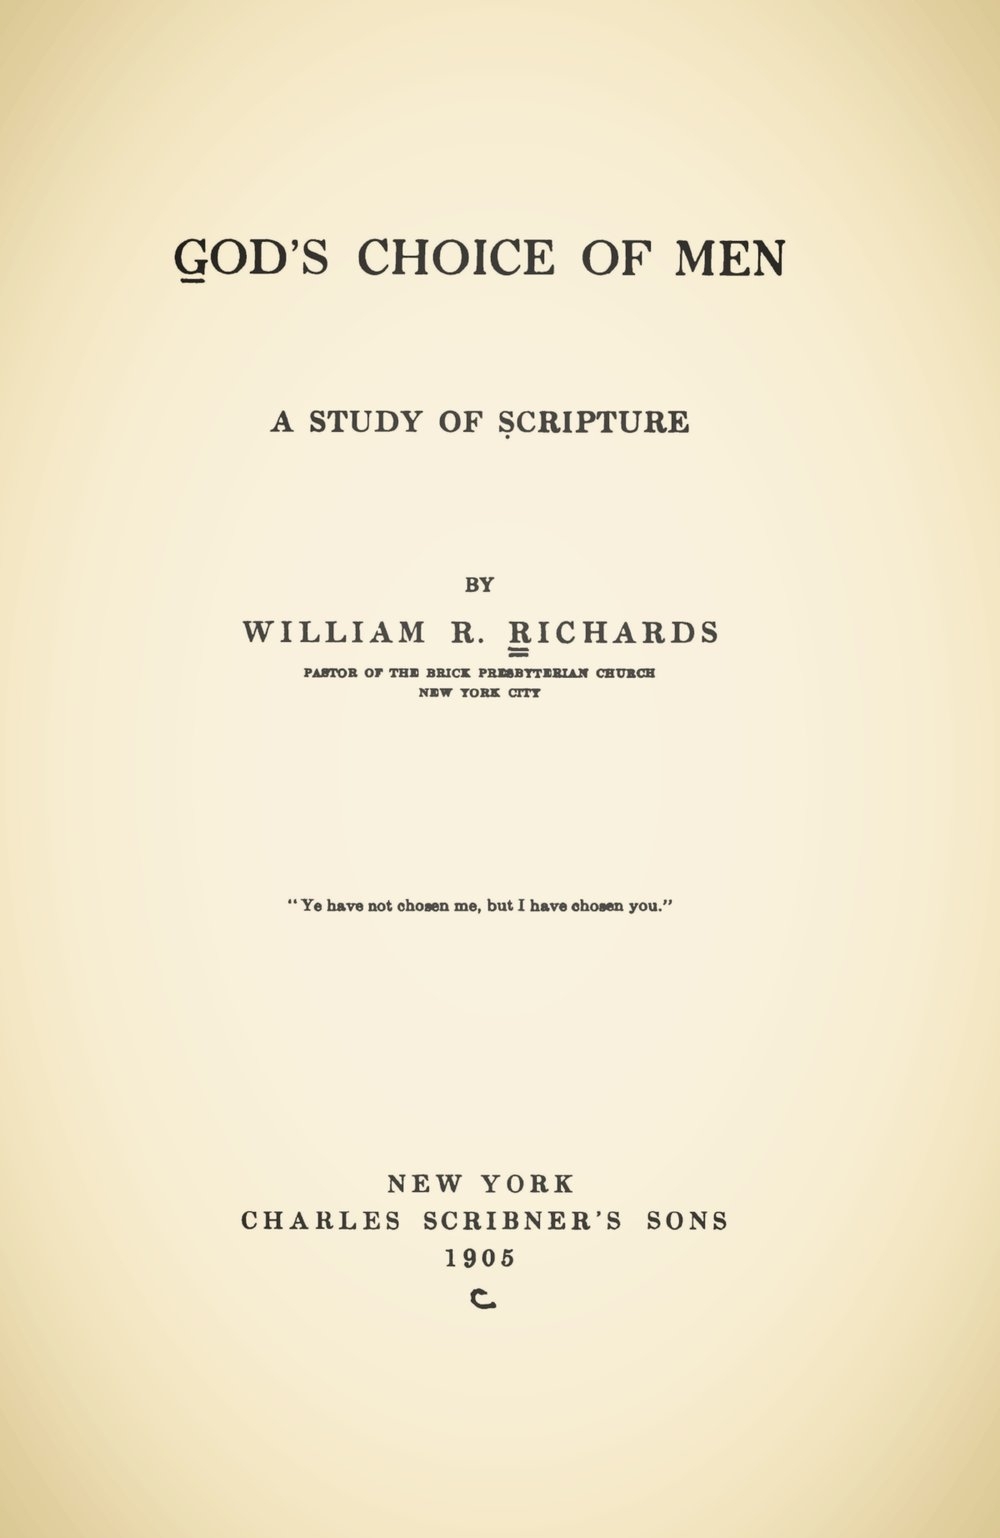 Richards, William Rogers, God's Choice of Men Title Page.jpg